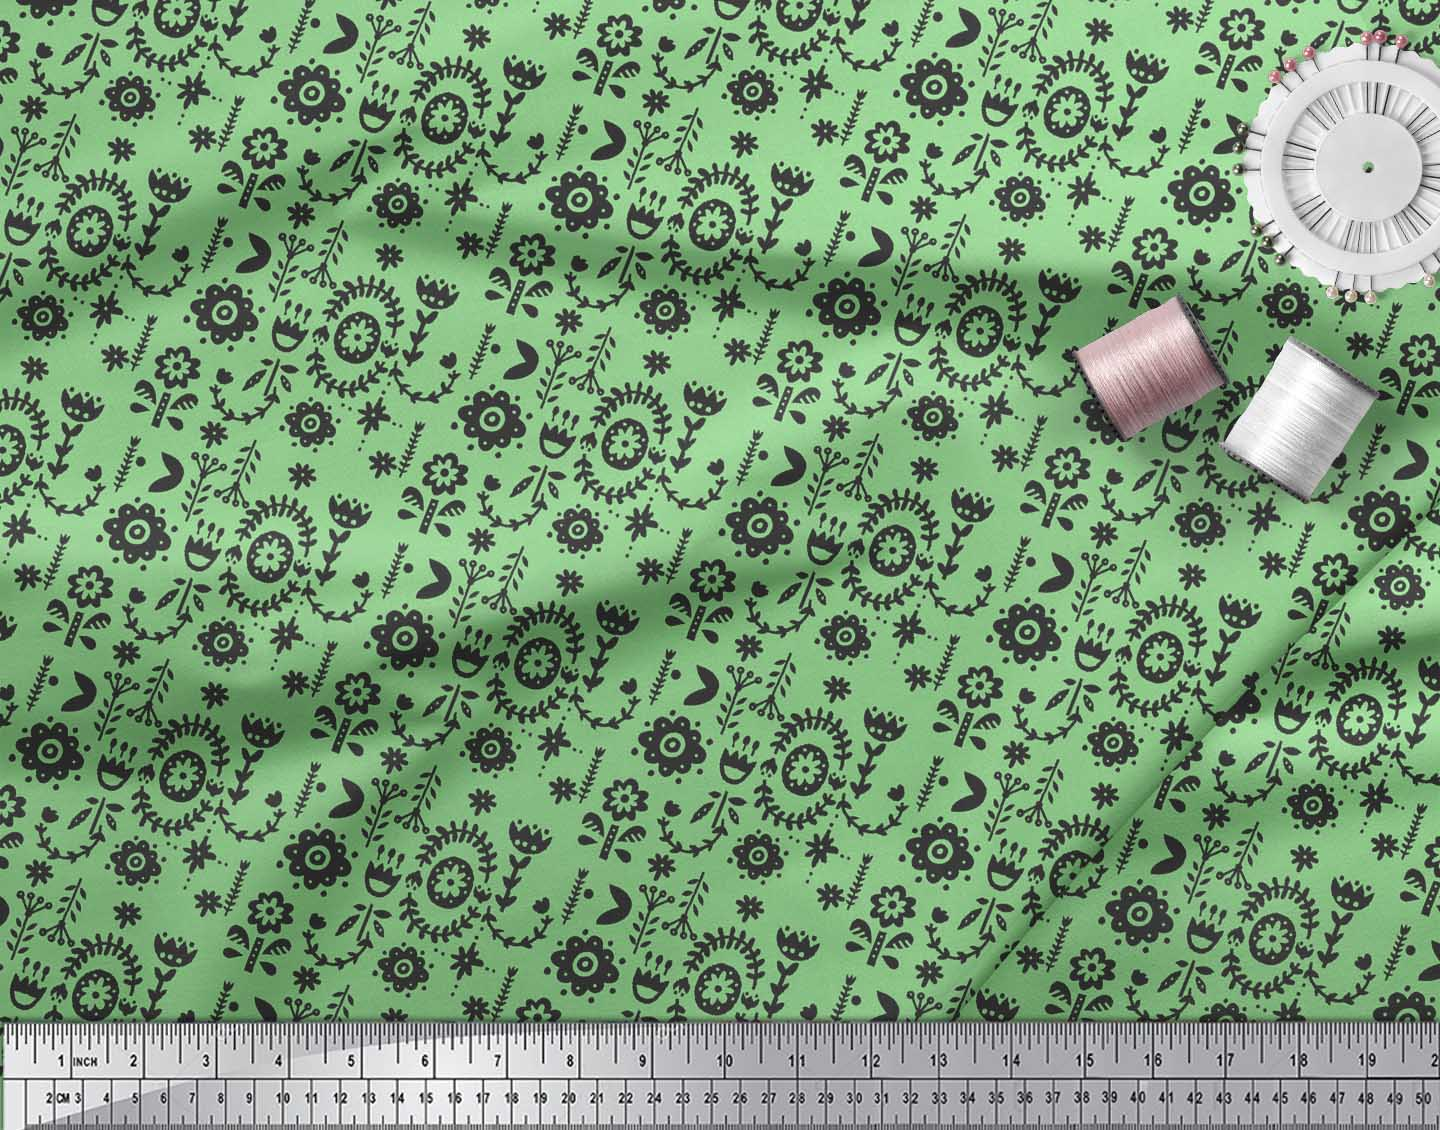 Soimoi-Green-Cotton-Poplin-Fabric-Leaves-amp-Floral-Folk-Art-Print-Nhr thumbnail 4